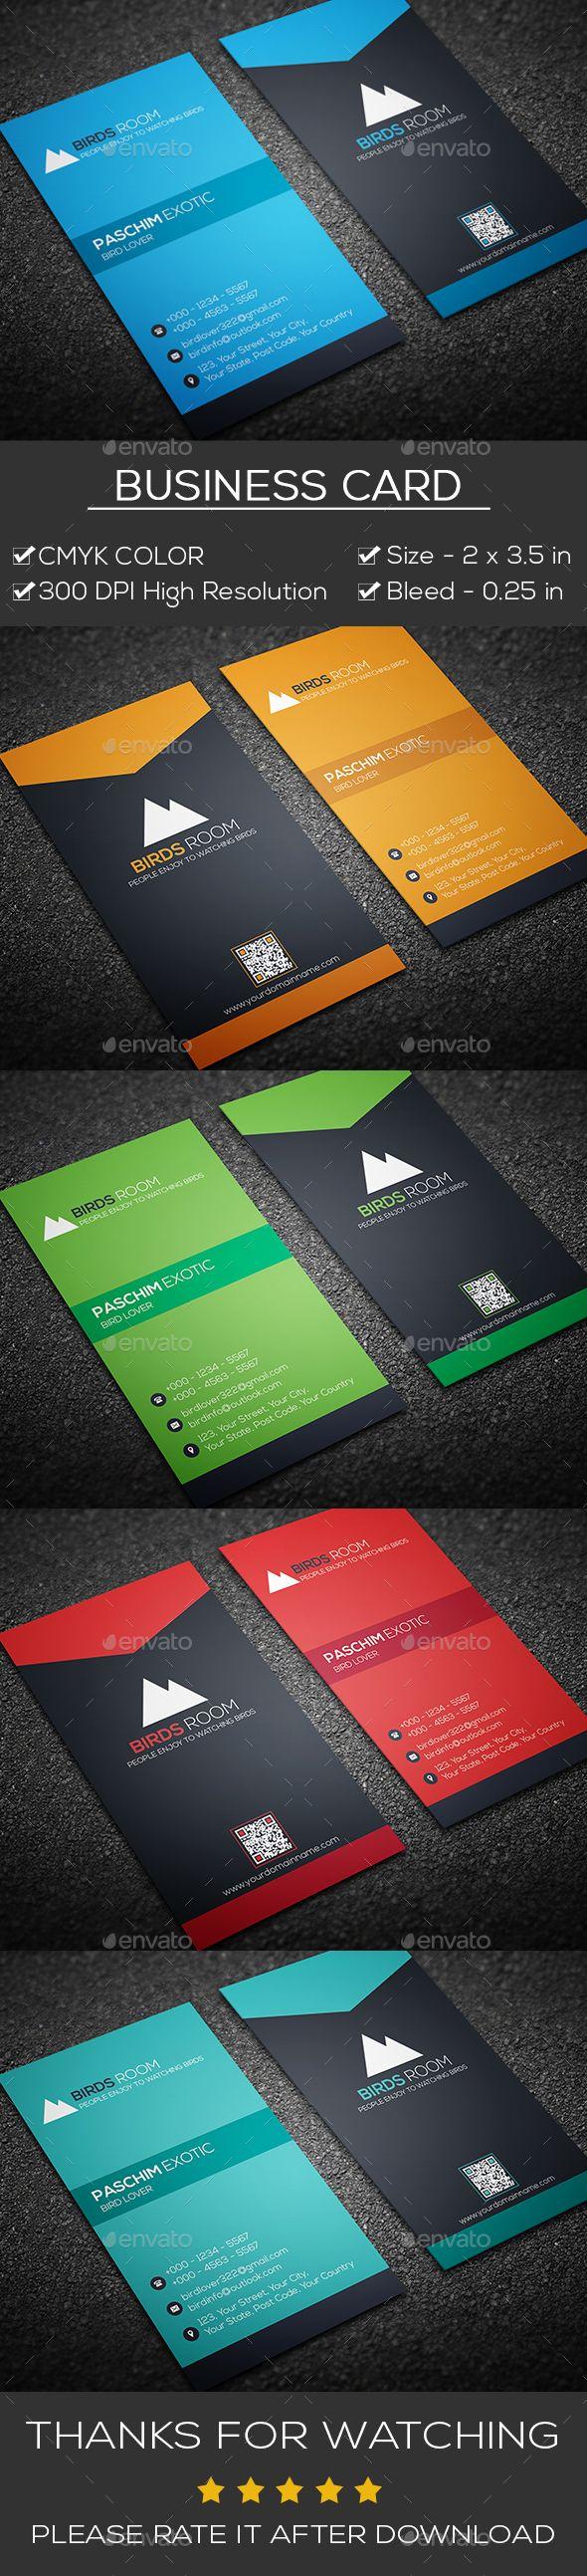 60 Best Business Card Inspiration Images On Pinterest Business